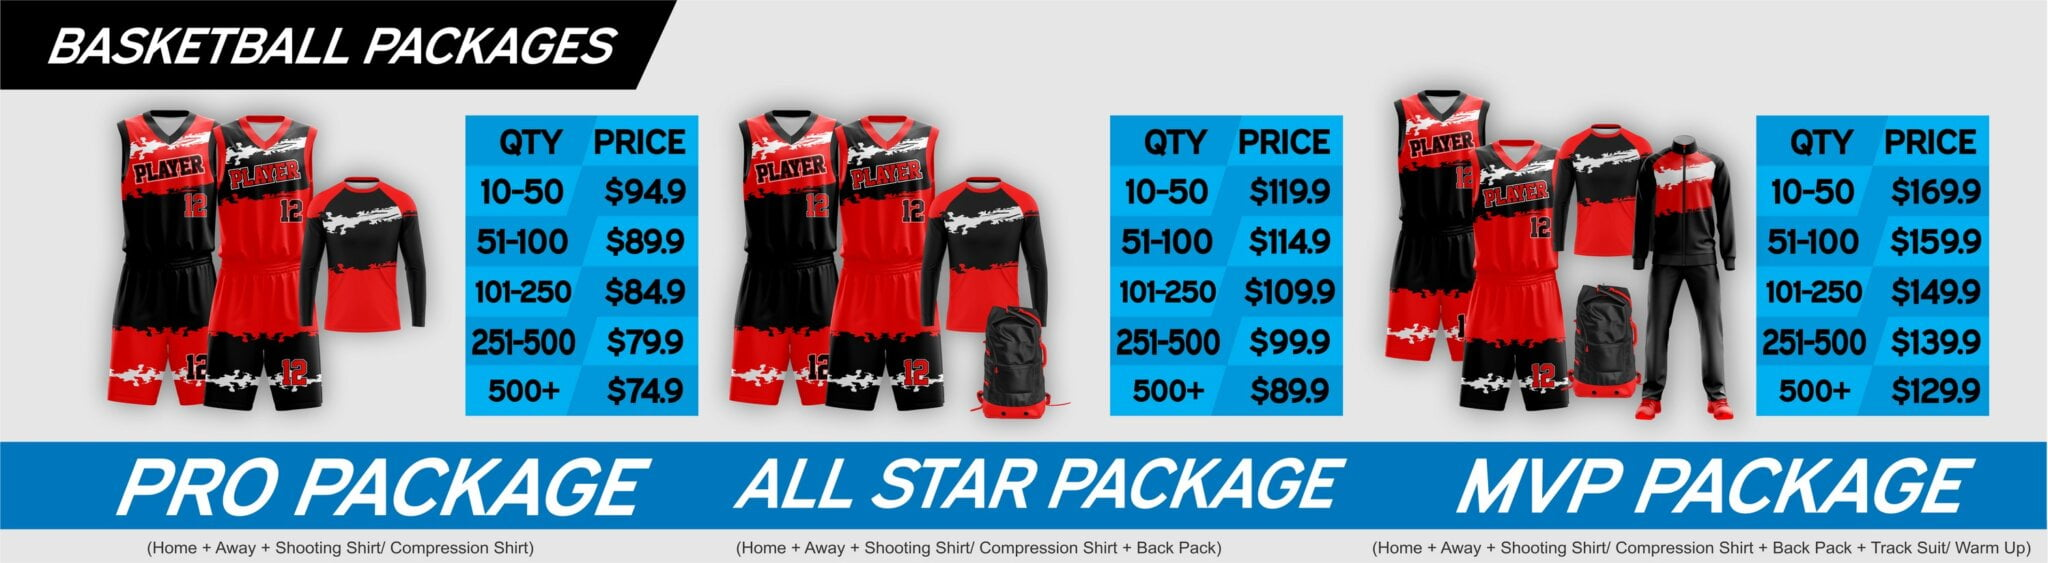 BASKETBALL PRICING BANNER